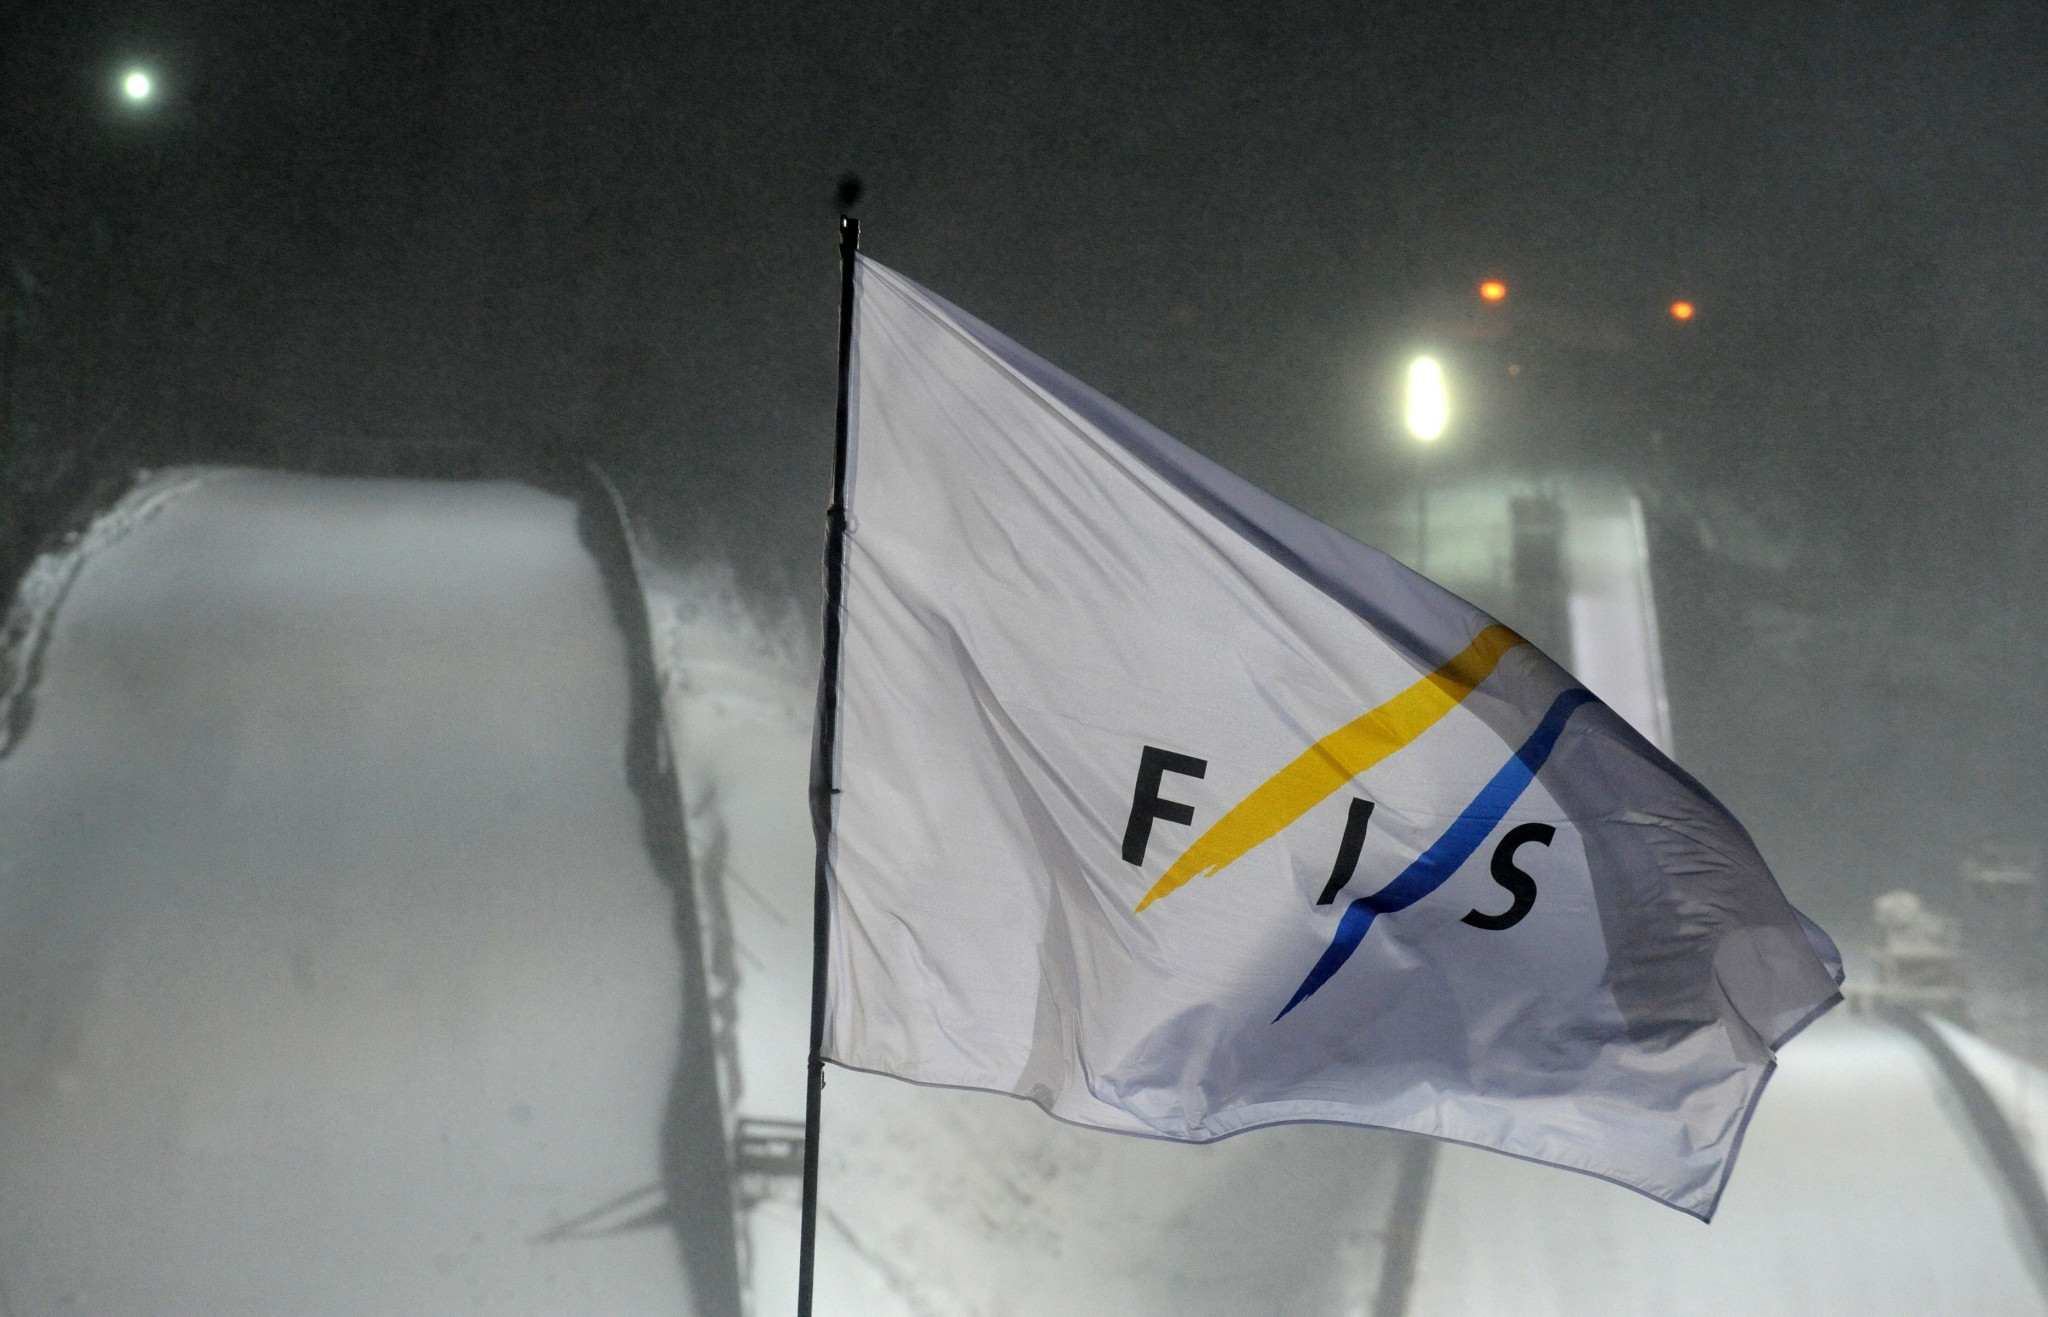 FIS Autumn Technical Committee Meetings to be held online due to COVID-19